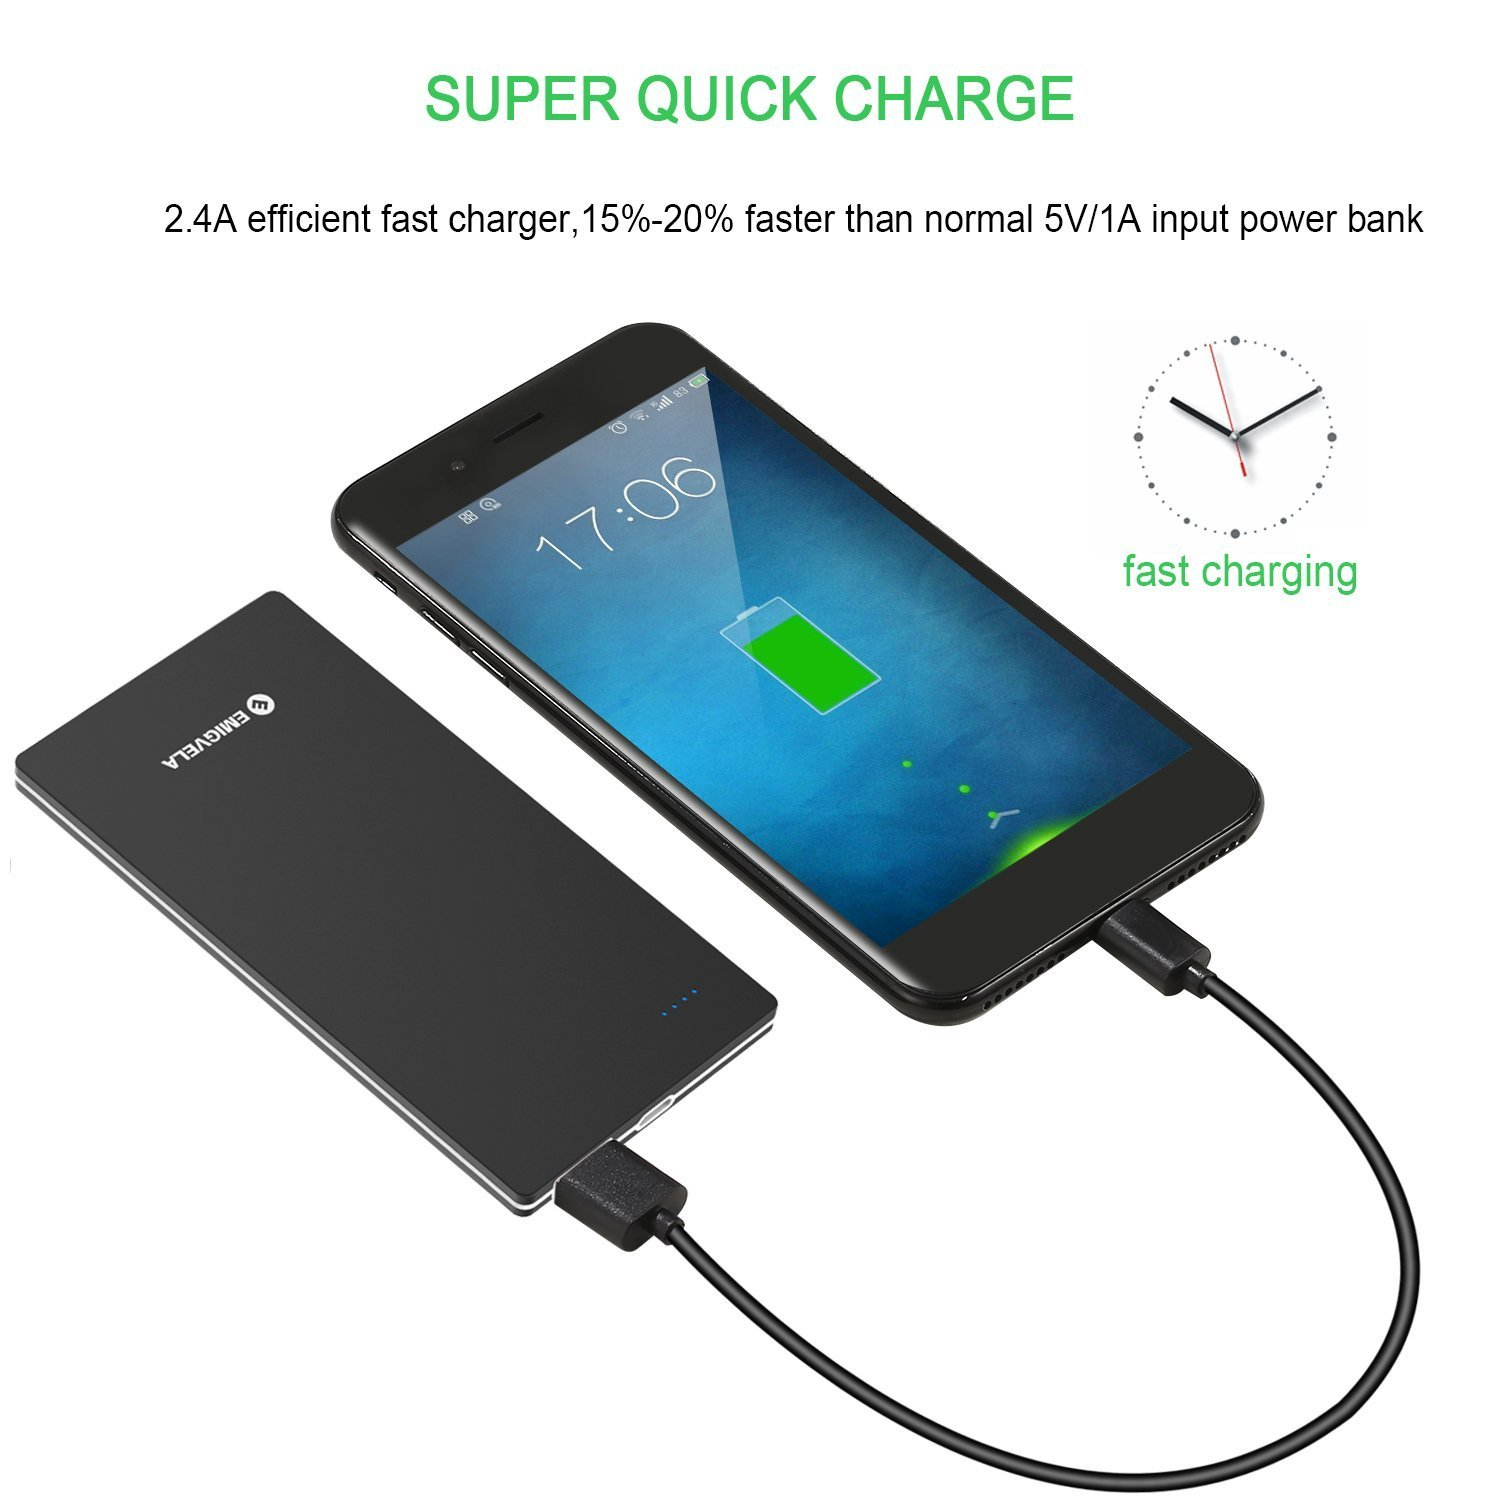 8mm Power Bank Slim 5000mah,  Ultra Slim 5000mAh External Battery with High-Speed Charging Technology, 5V/2A USB Output Port Qucik Charging for iPhone , Smartphone, Black